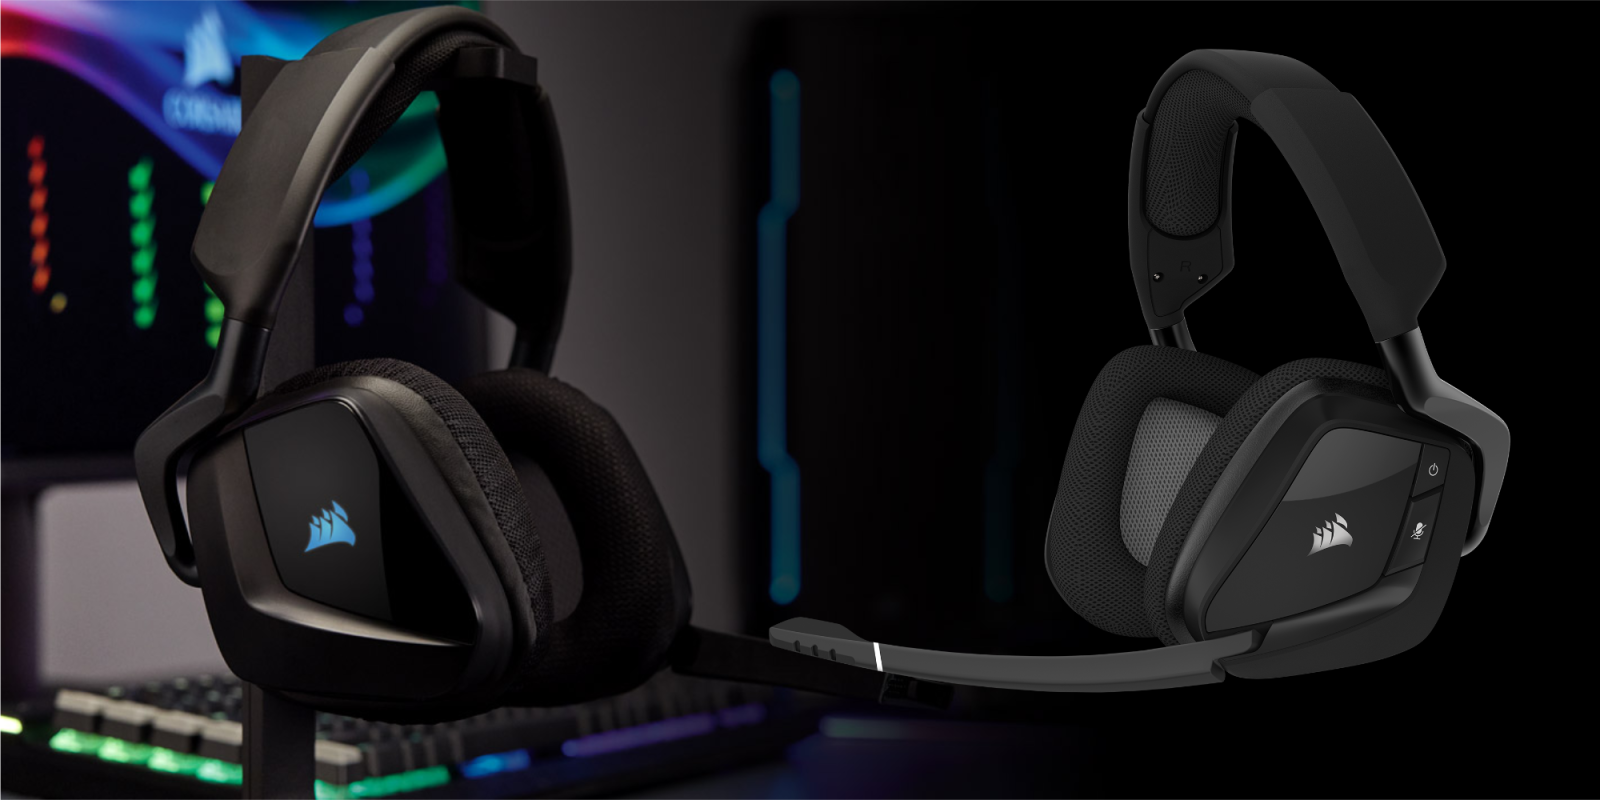 9234bfe4045 Bring Dolby surround sound to your gaming setup with CORSAIR's Void PRO  Headset at $50 ($20 off)